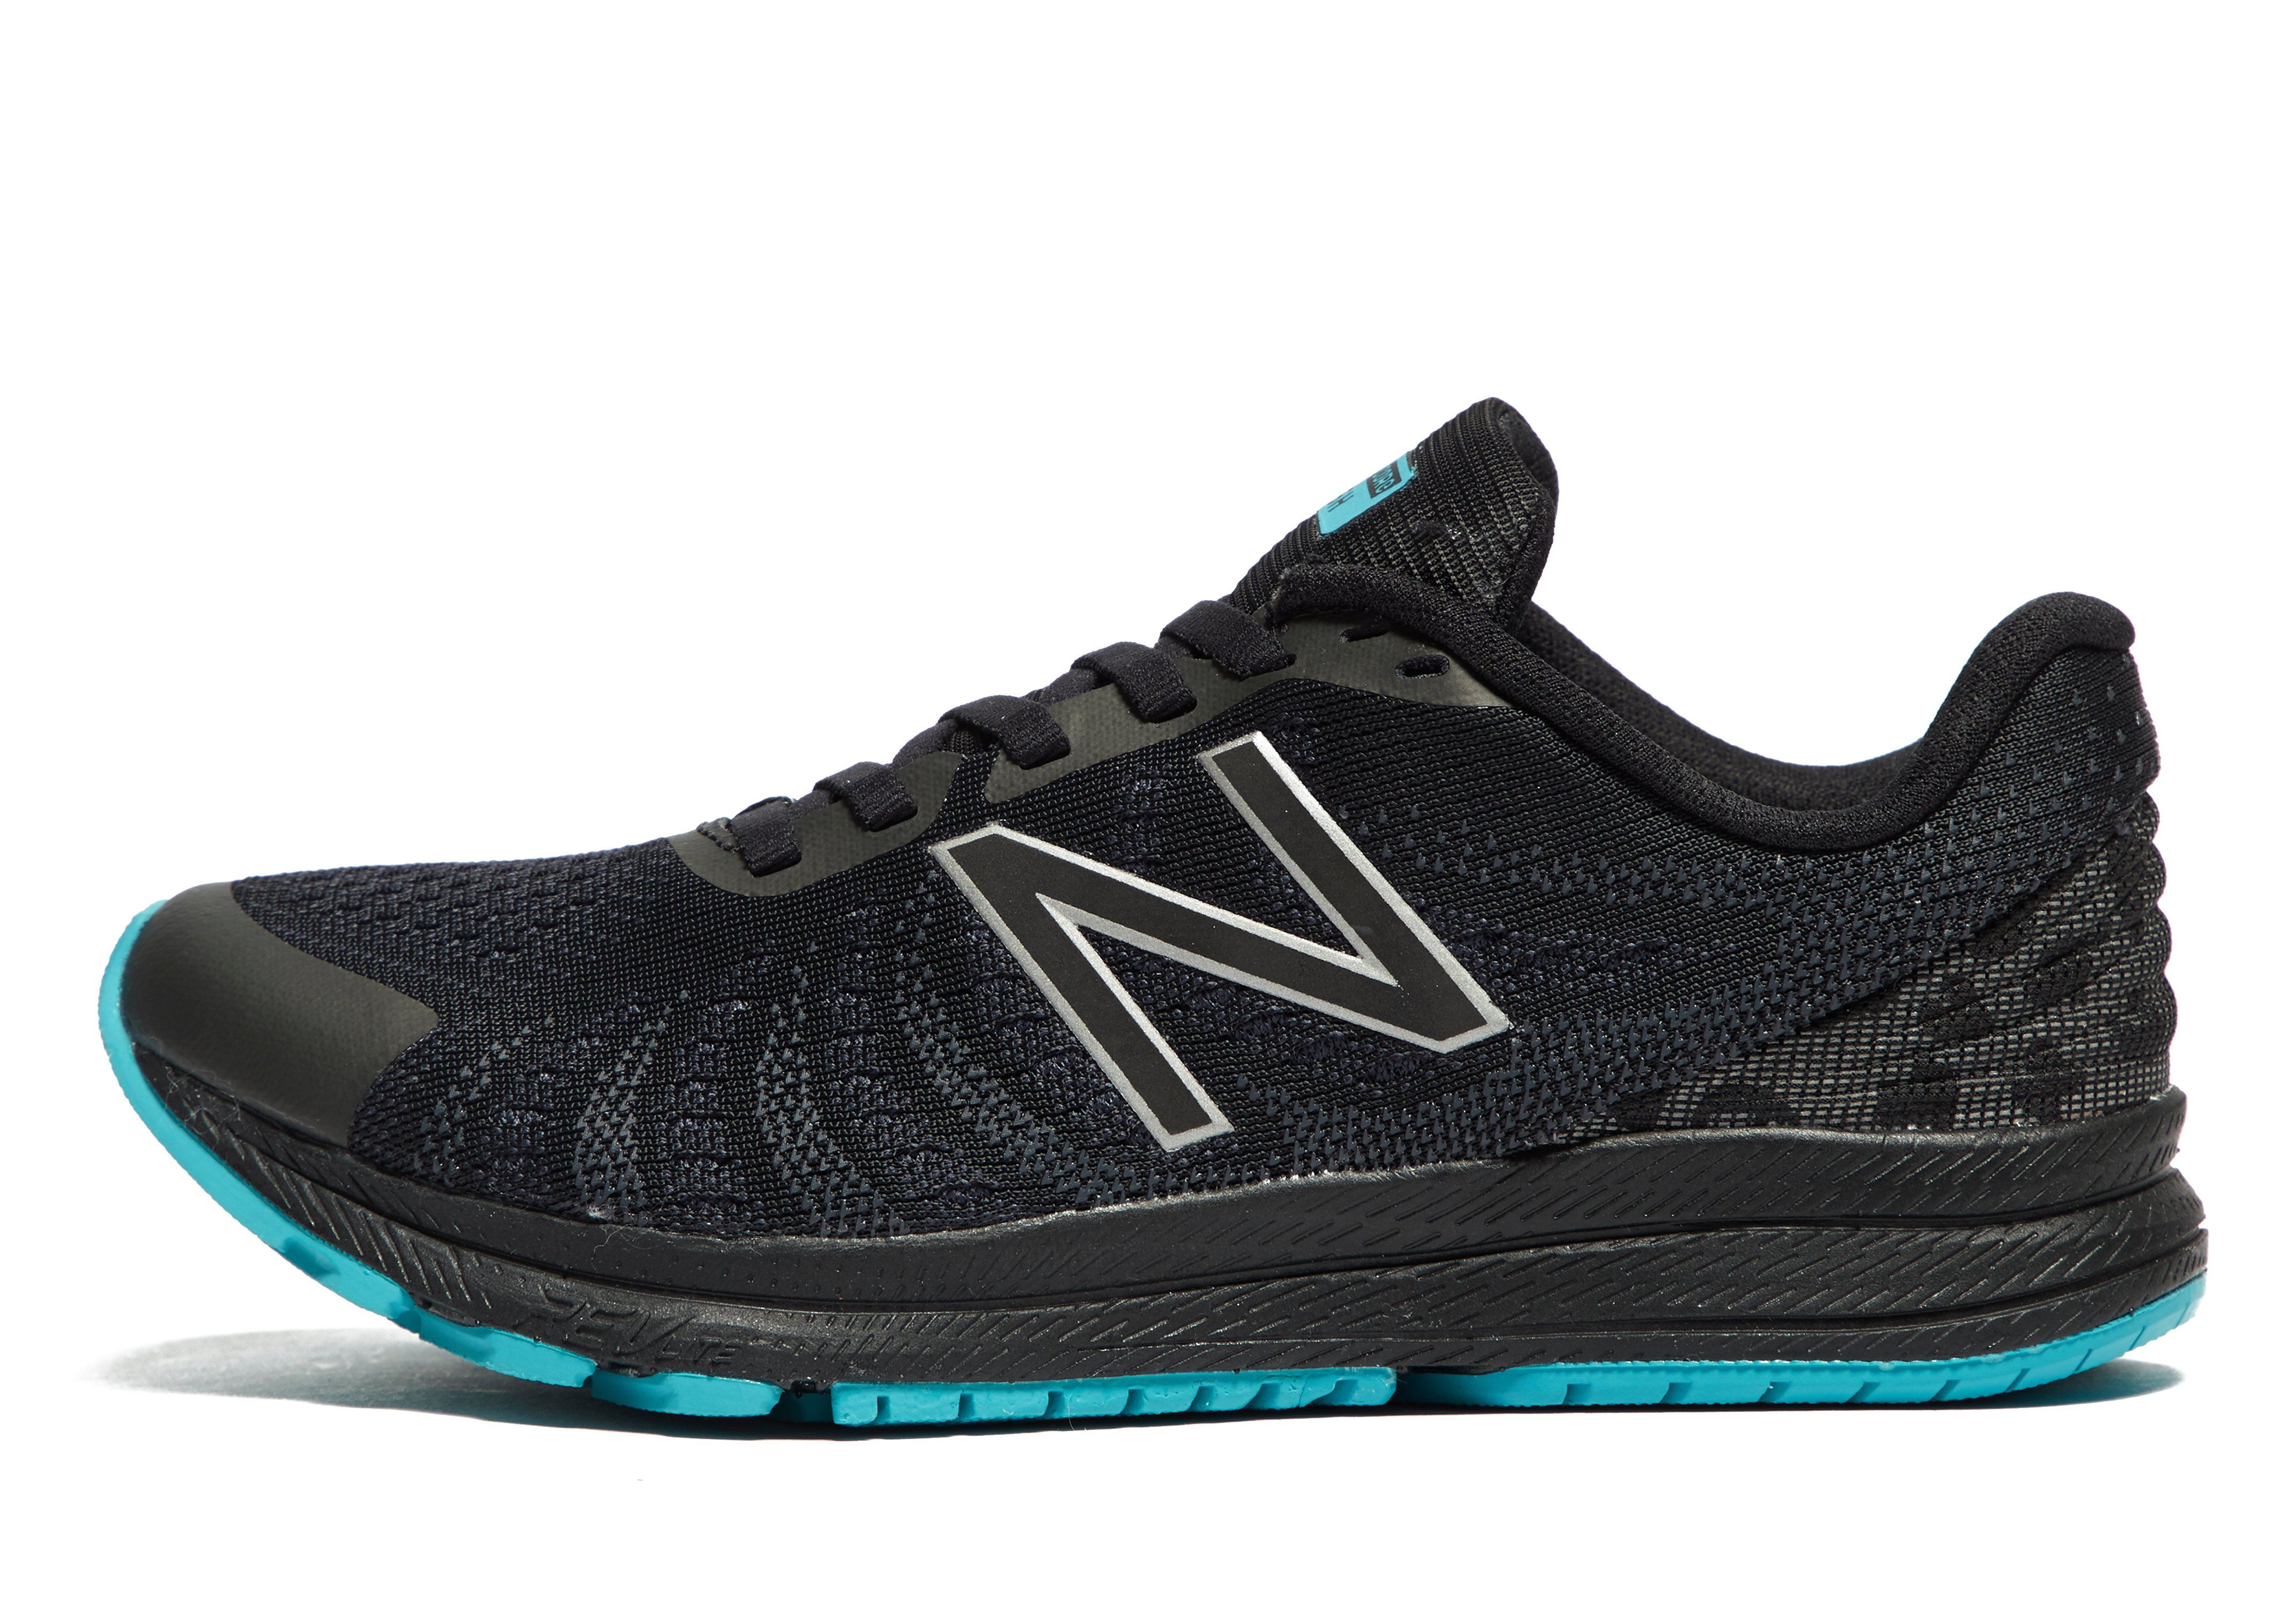 6ee2c6f17bf0e ... 373 10c9b 6ca92 clearance new balance fuelcore rush v3 viz pack womens  66a0a 7c9be ...